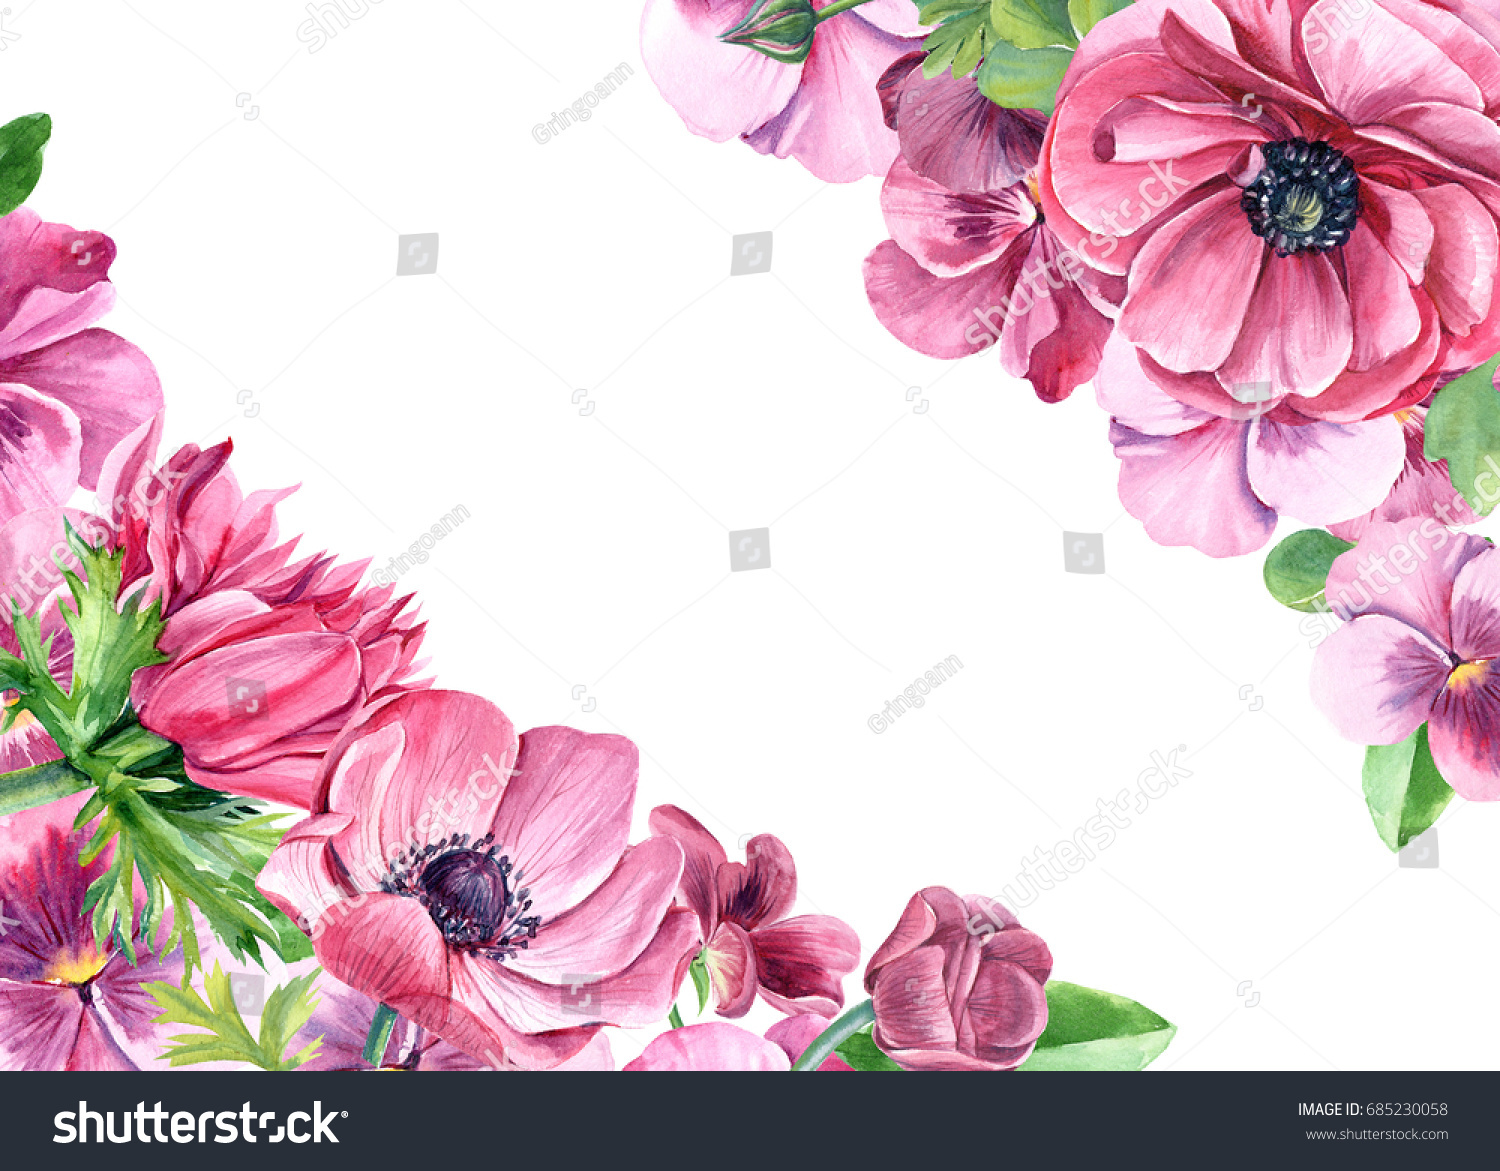 Hand Painted Illustration With Pink Pansy And Anemones Flowers